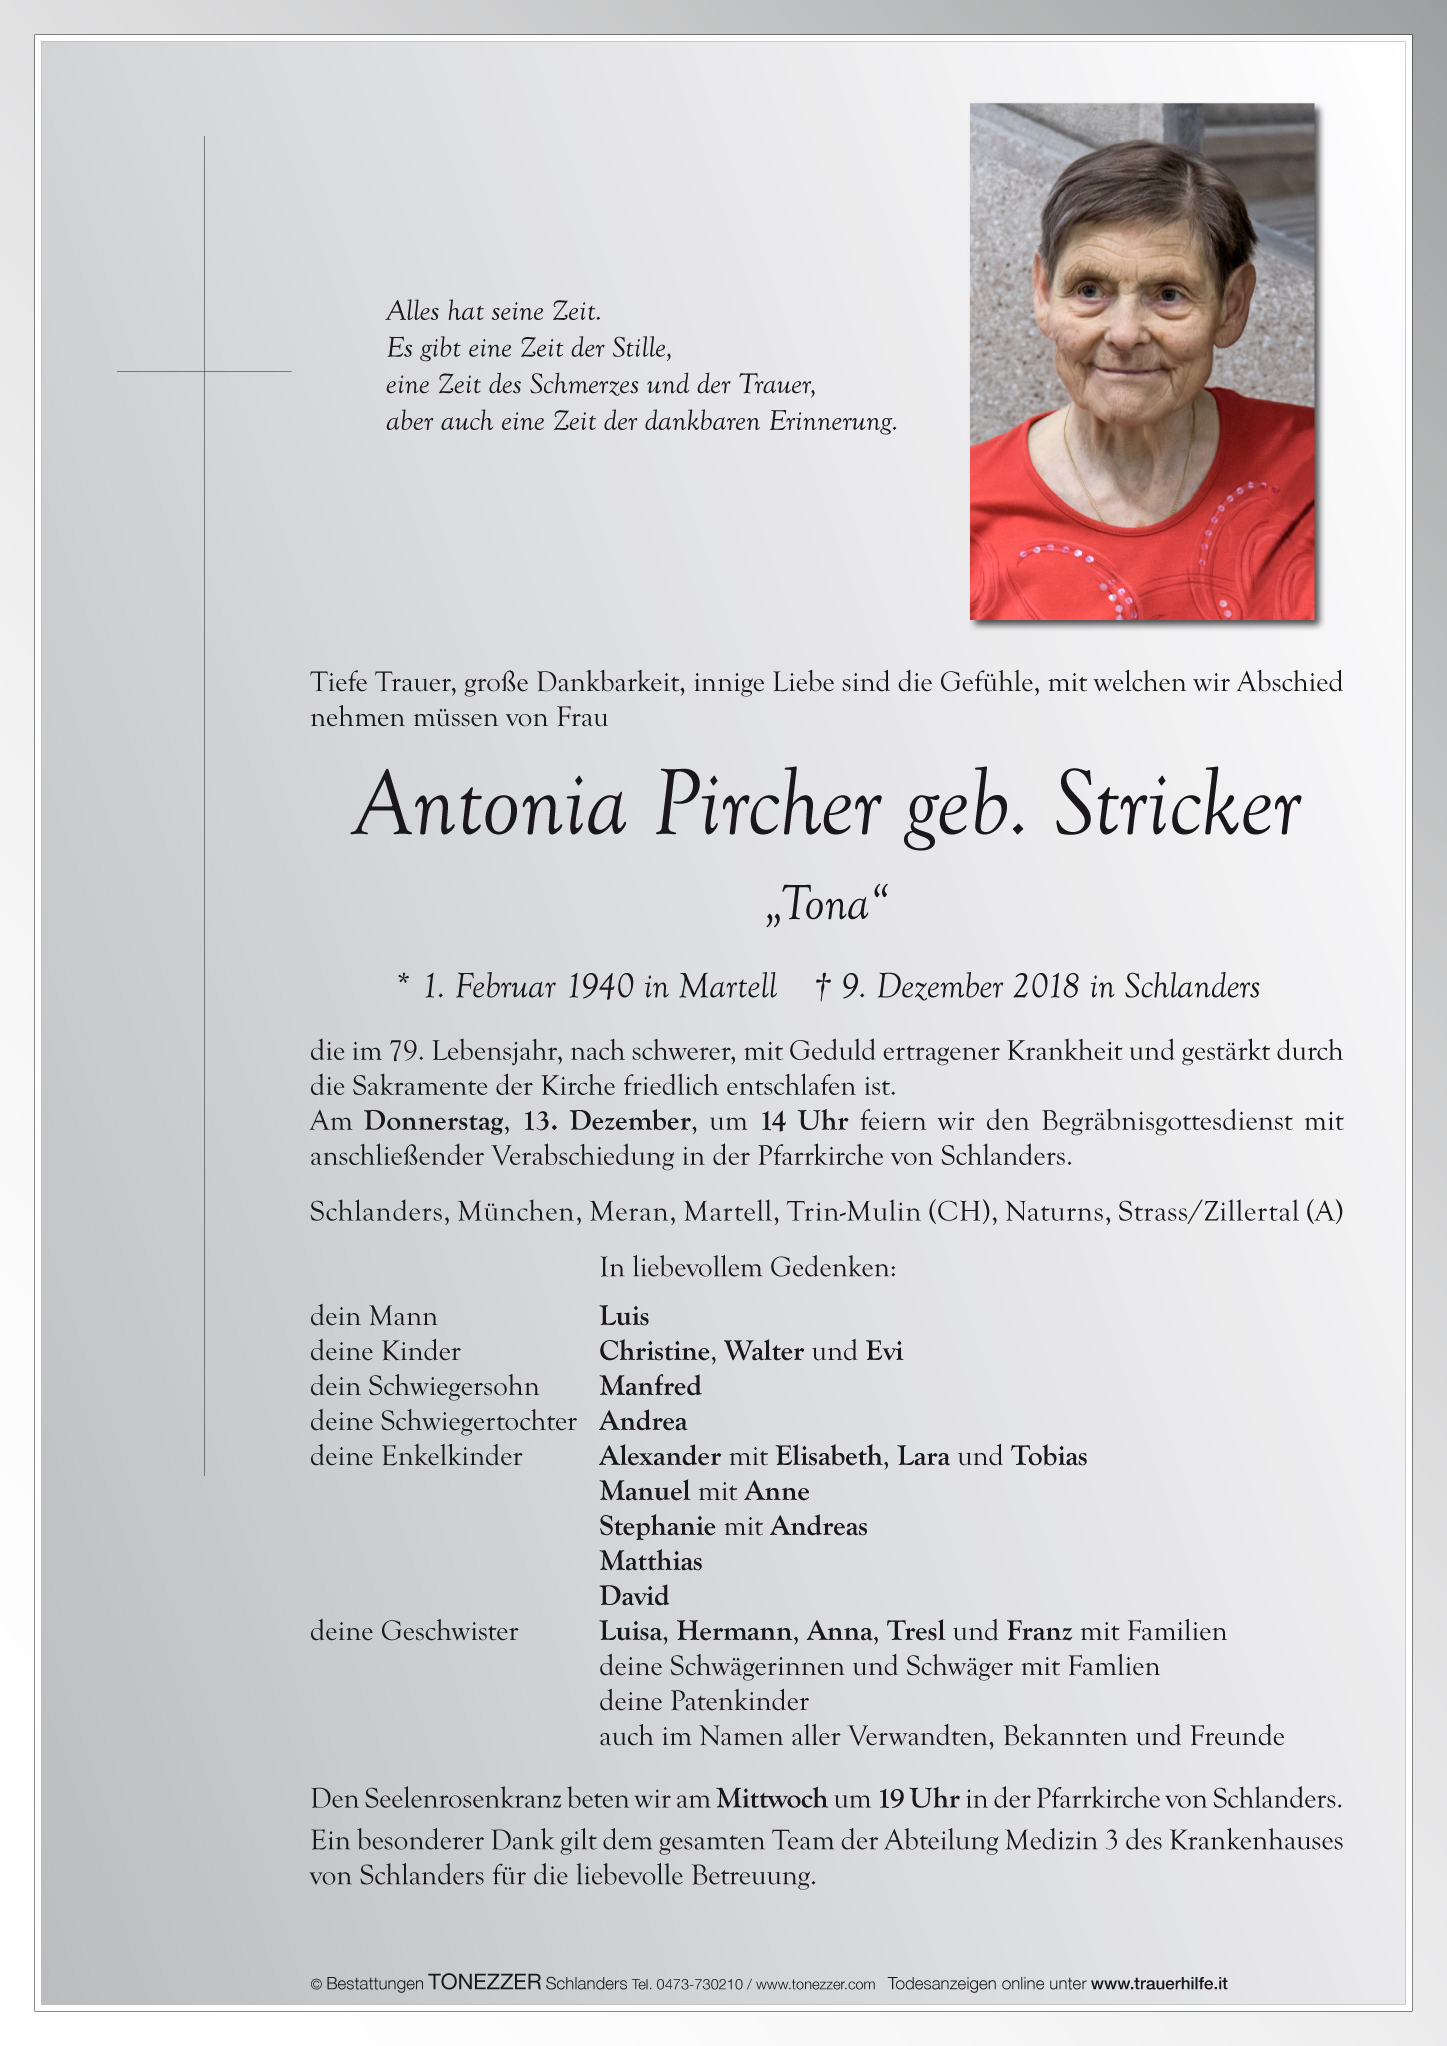 Antonia Pircher